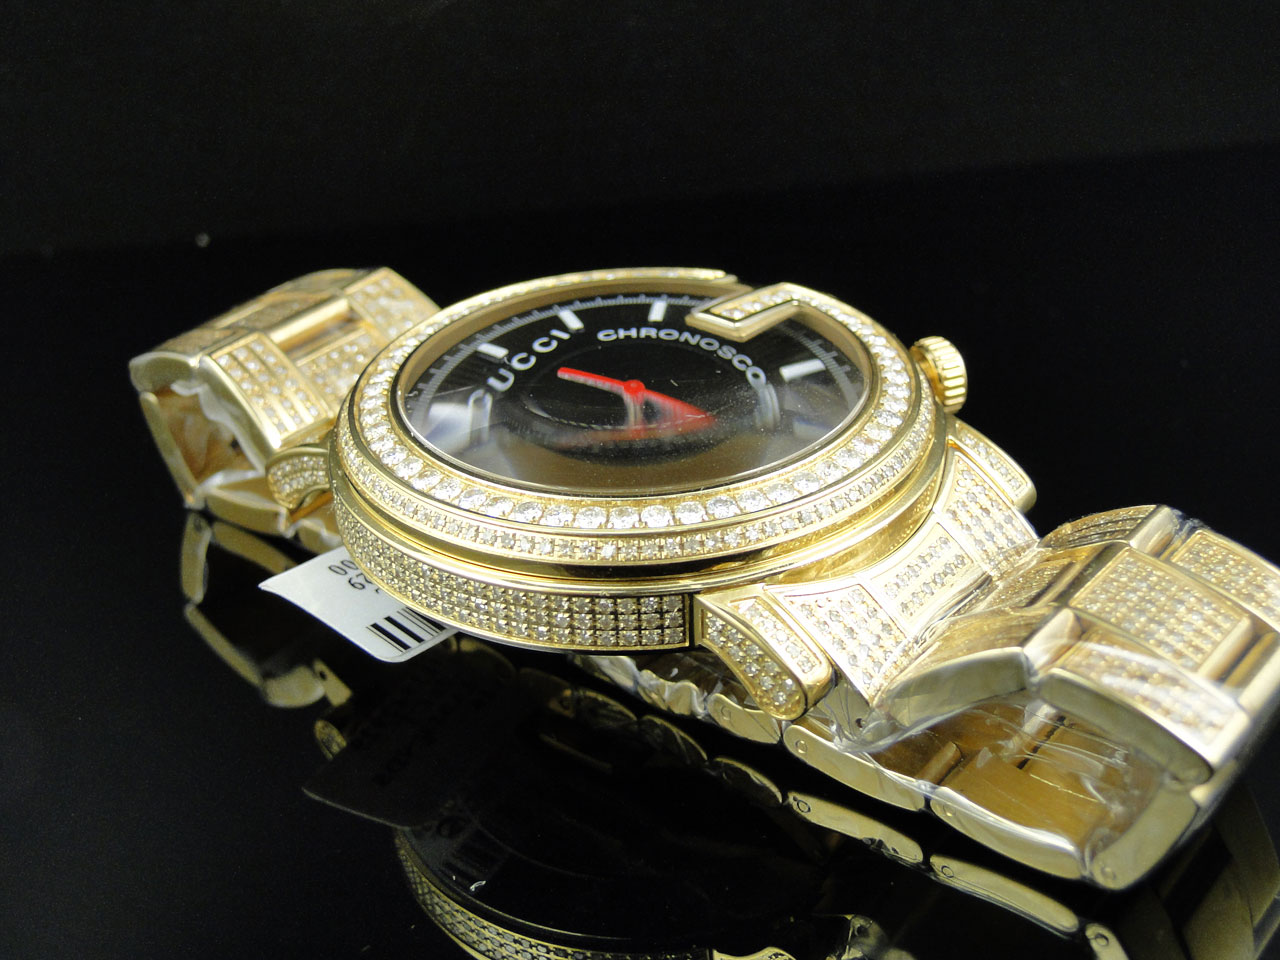 new custom mens 101 g gold pvd real 44 mm diamond gucci ya101334 new custom mens 101 g gold pvd real 44 mm diamond gucci ya101334 watch 8 85 ct